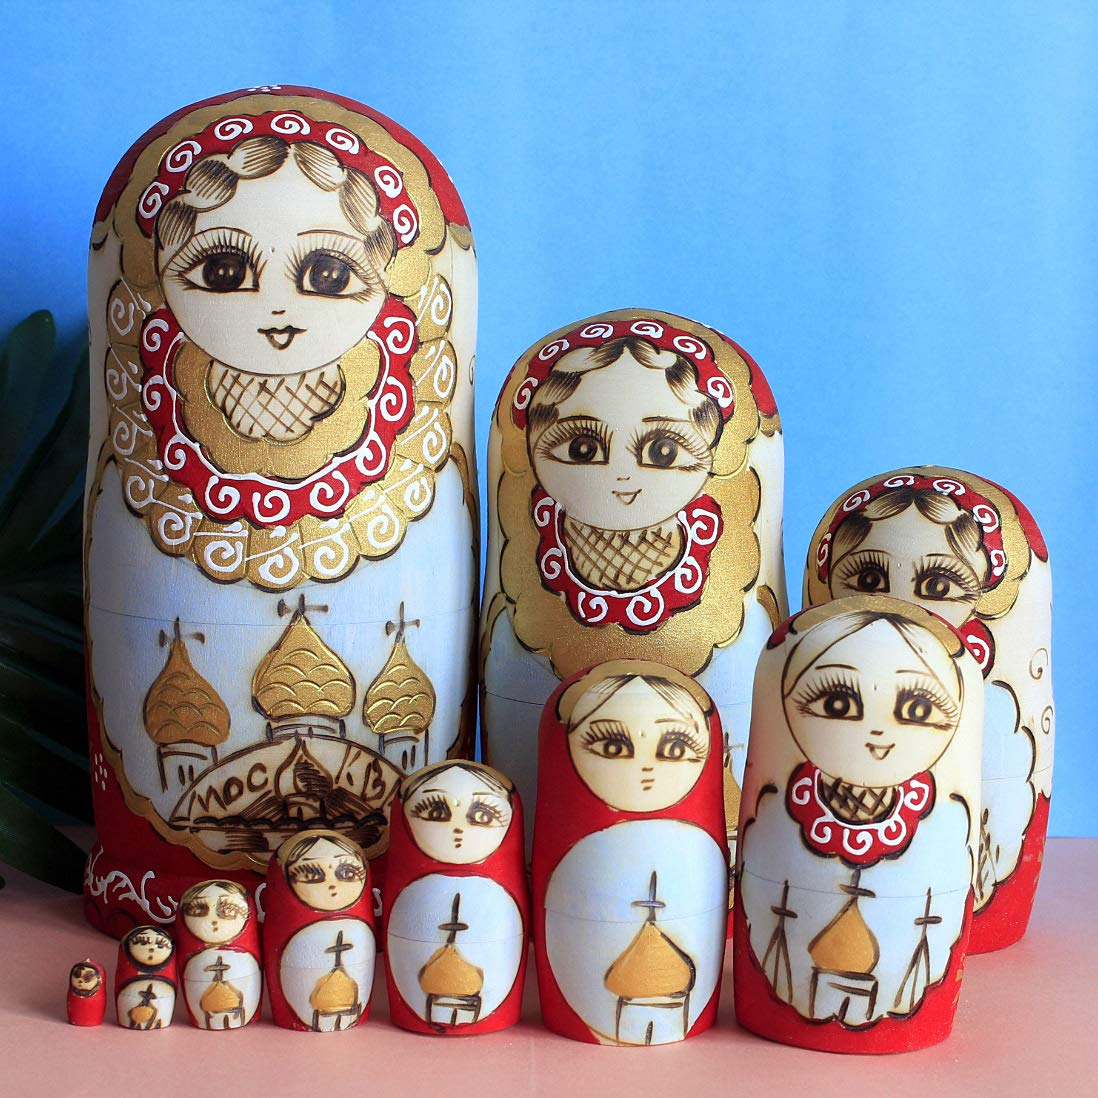 Hoverex Beautiful Set of 7 Cutie Nesting Dolls Matryoshka Madness Russian Doll Wooden Wishing Dolls Toy by by Hoverex